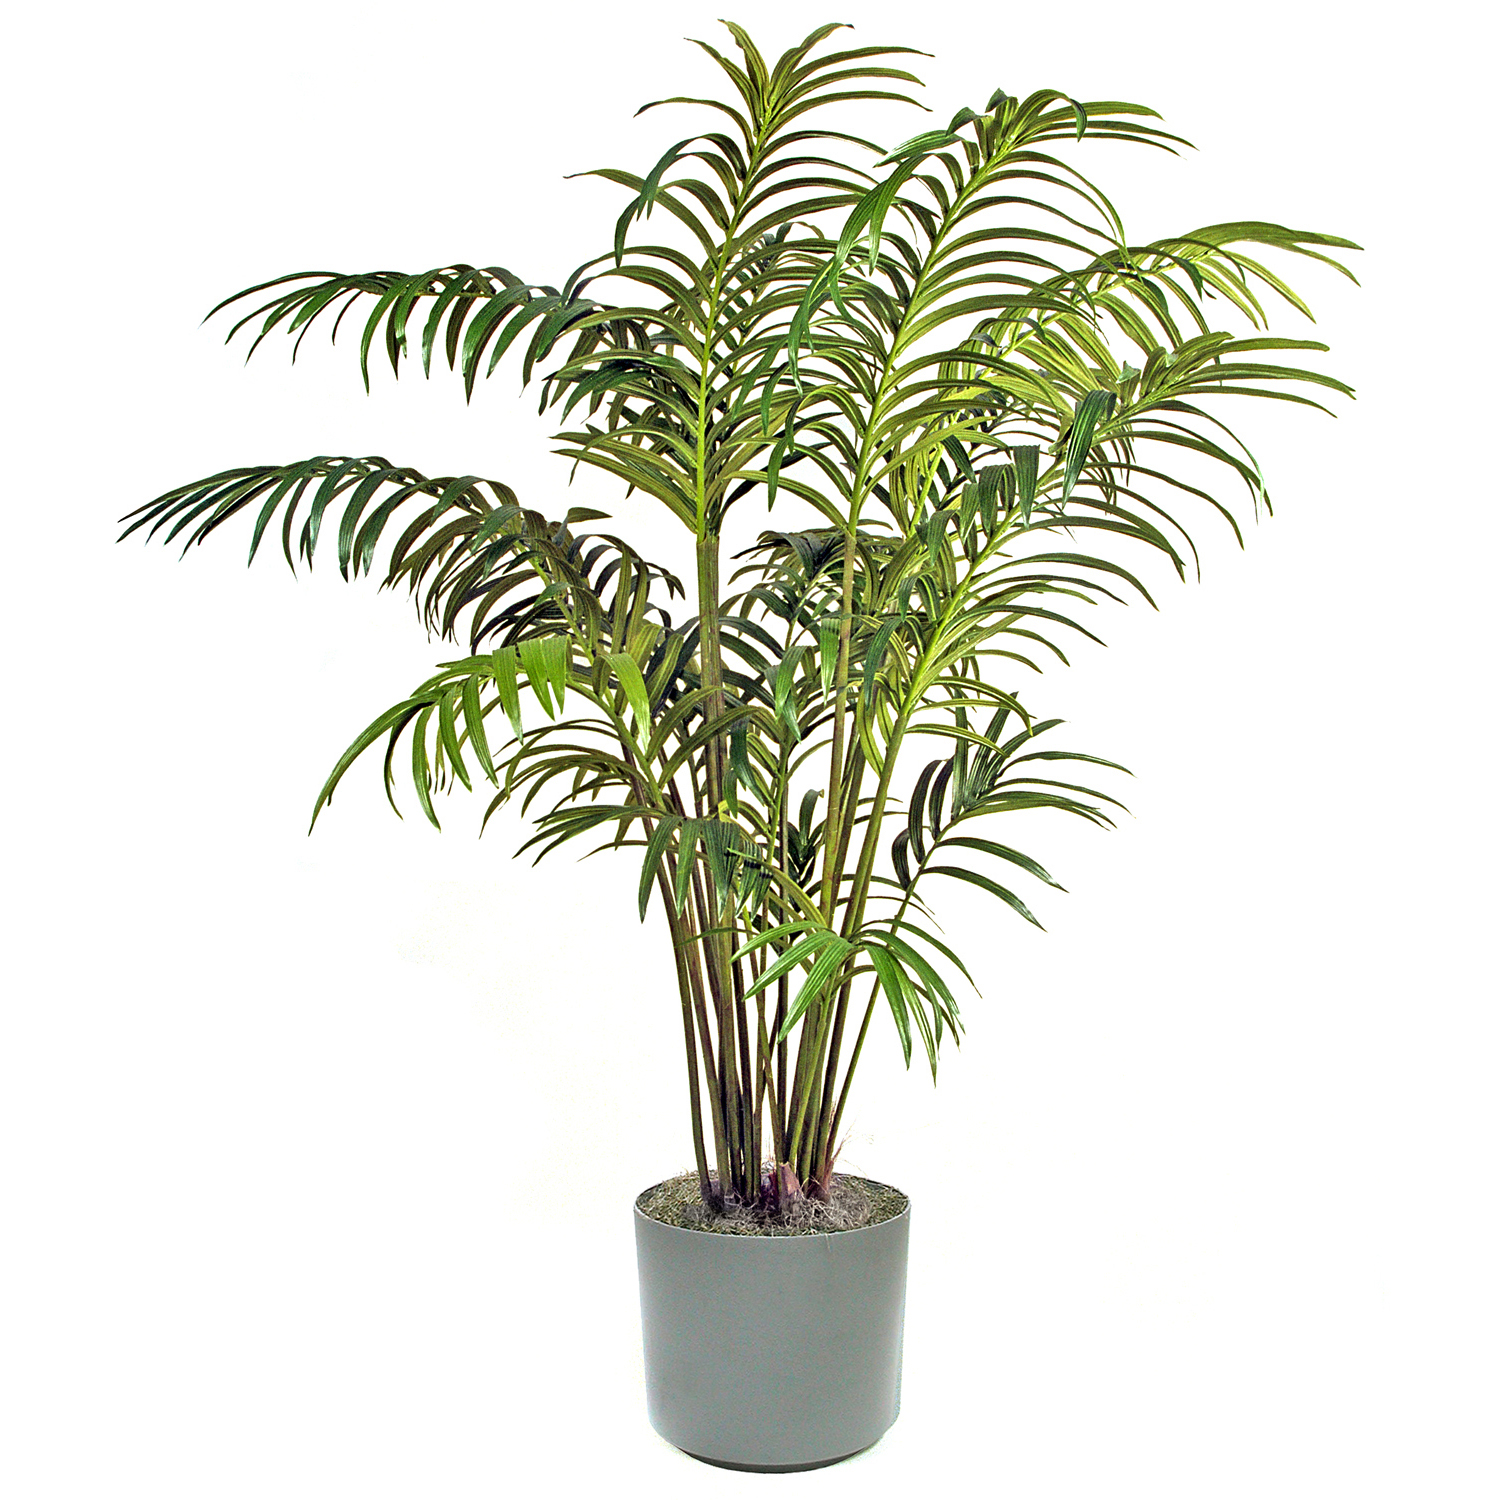 Palm Tree Decorative Plant 460.28 Kb